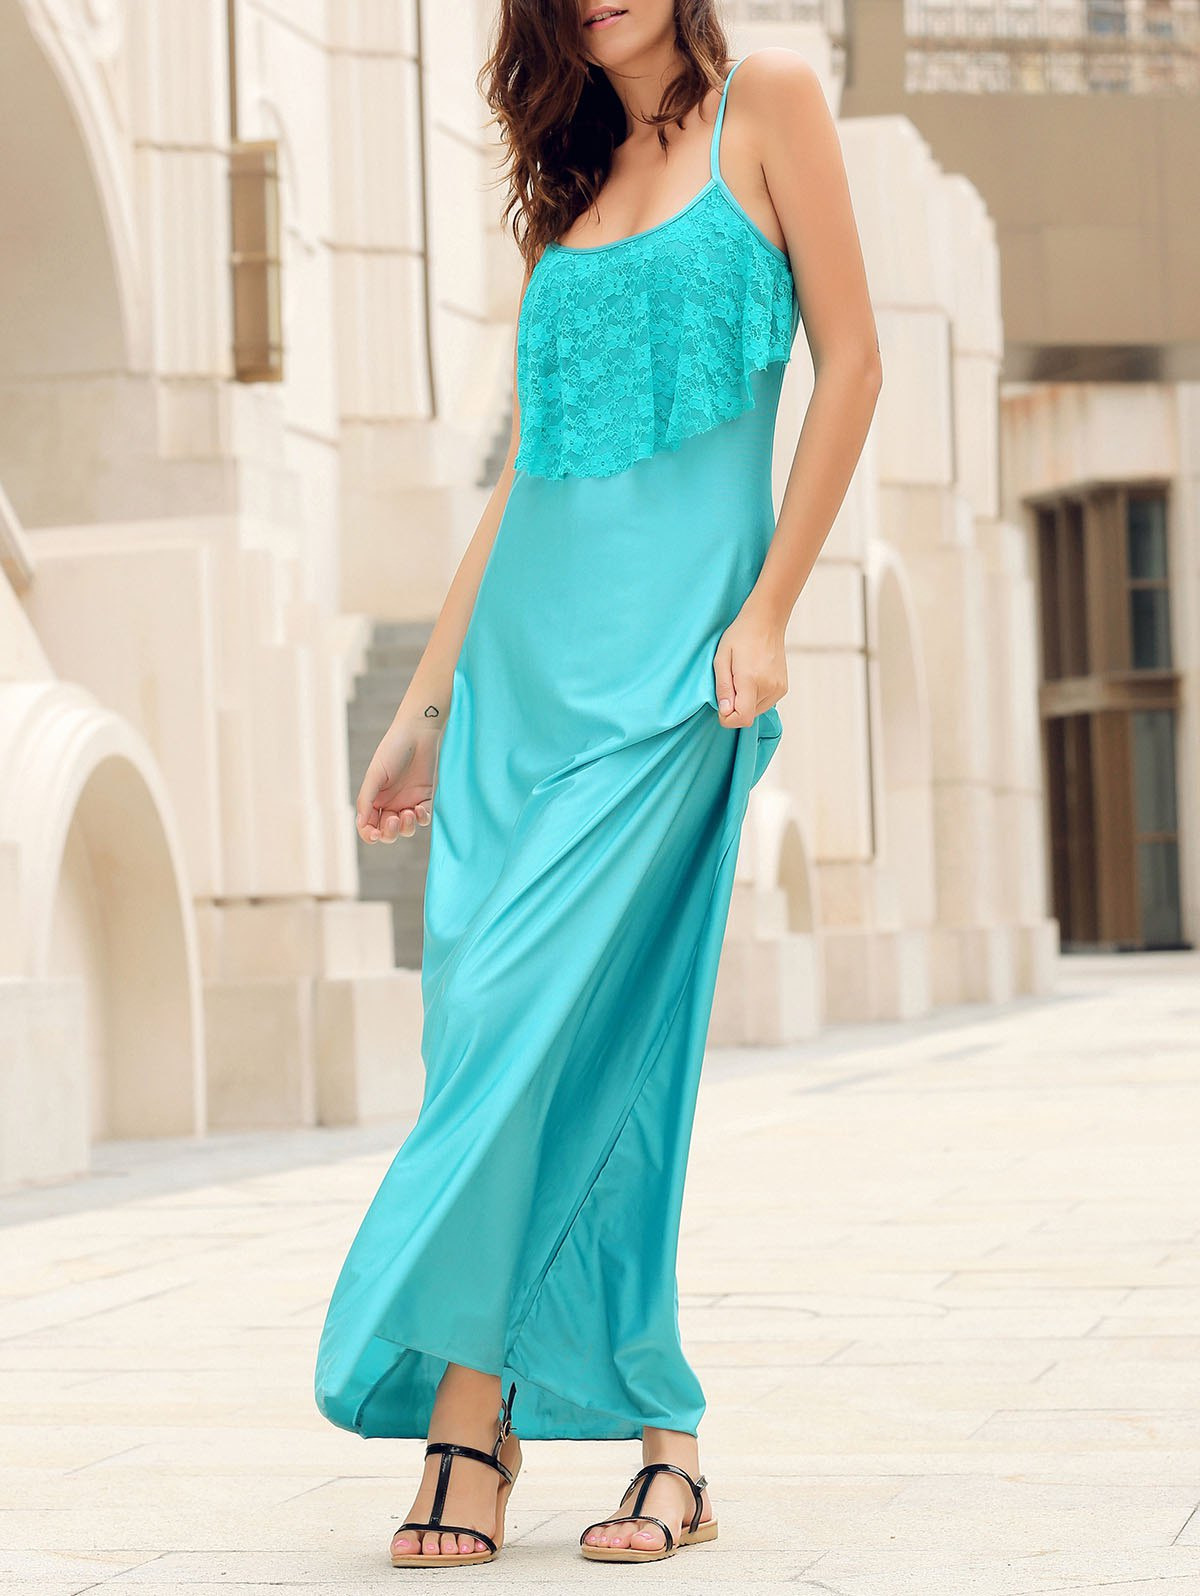 New Long Slip Lace Trim Backless Floor Length Dress